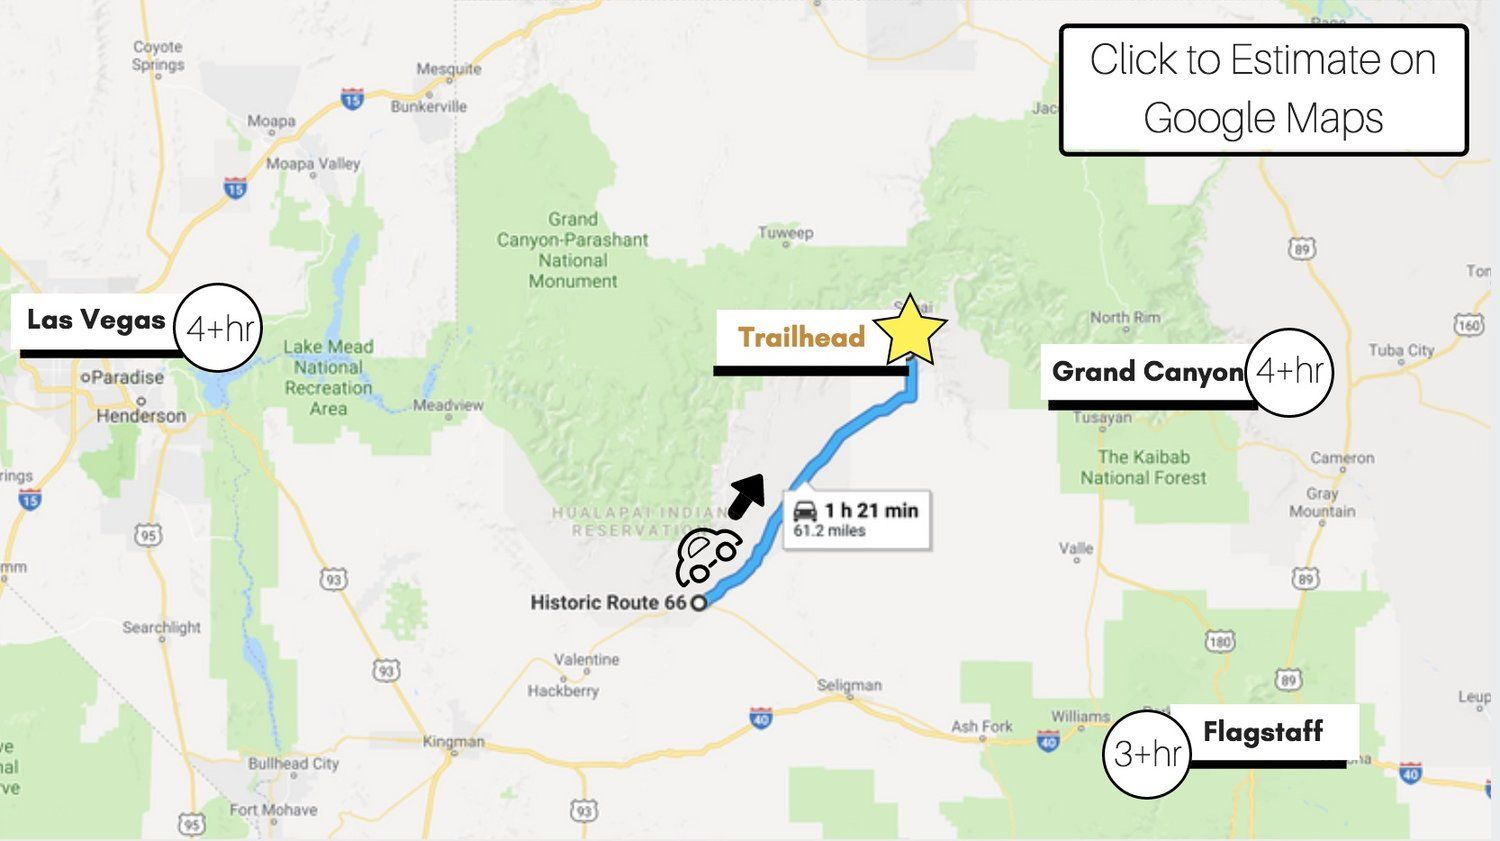 The ULTIMATE Guide to the Havasu Falls Hike in 2019 ... on map of meteor crater, map of shoshone falls, map of grand canyon region, map of utah, map of havasu falls, map of monument valley, map of mooney falls, map of canyon de chelly,